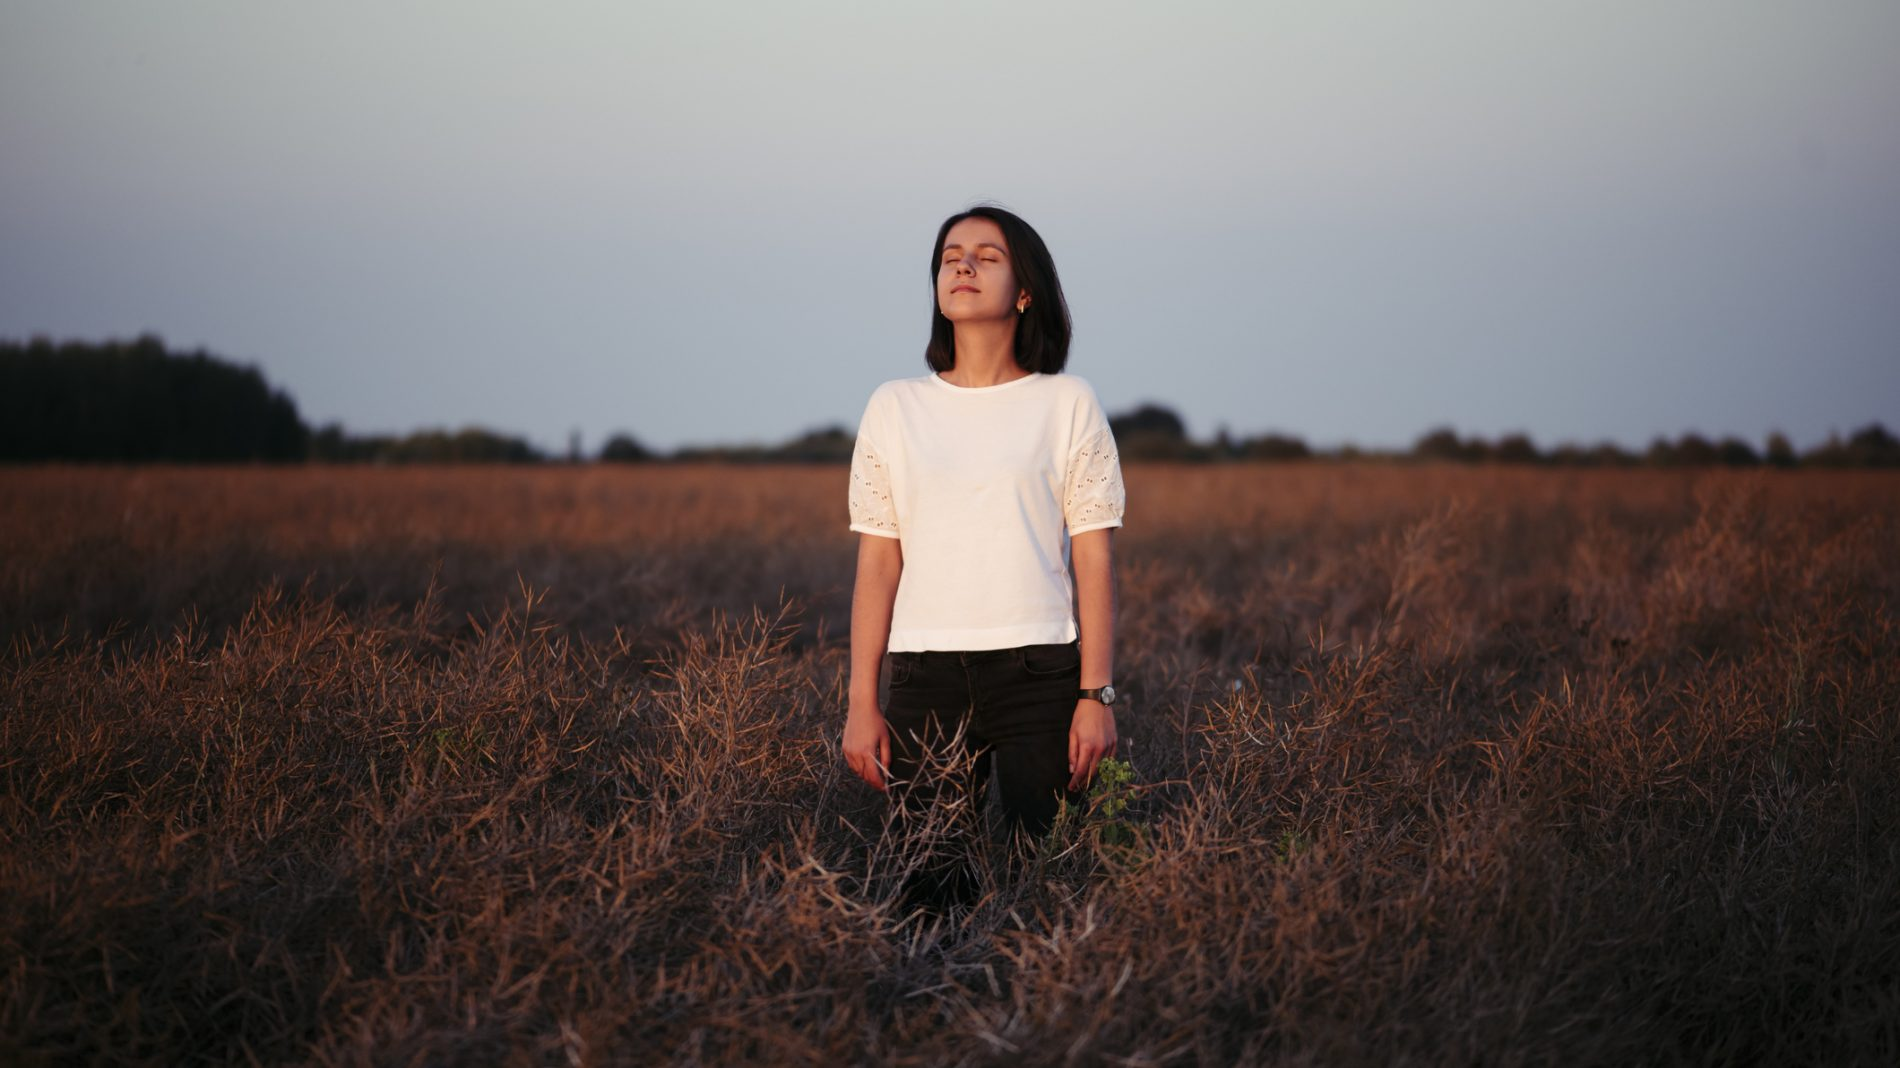 Woman standing alone in the sunset field, enjoying solitude